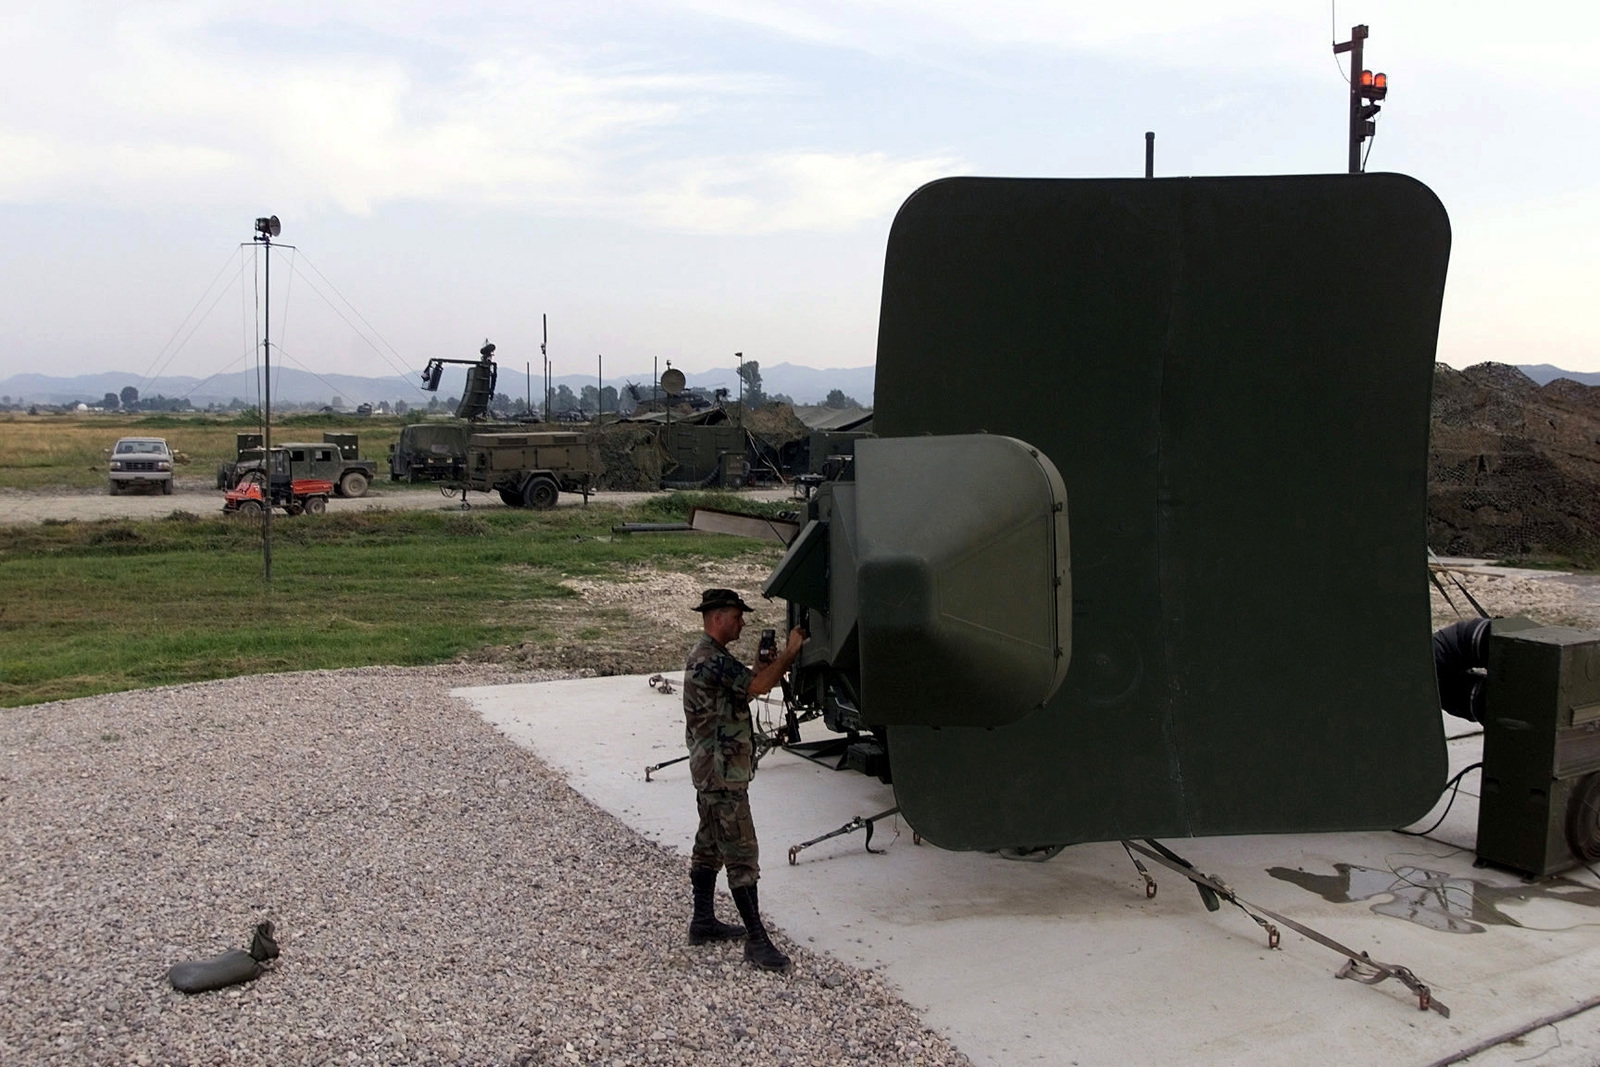 Right side profile, long shot from a high angle of MASTER Sergeant Steven Neal, 1ST Combat Communications Squadron, Ramstein Air Base, Germany, as he uses a multimeter to check the phase shifter power supply on the Precision Approach Radar. Members of 1ST Combat Communications are deployed to Albania in support of operation Shining Hope